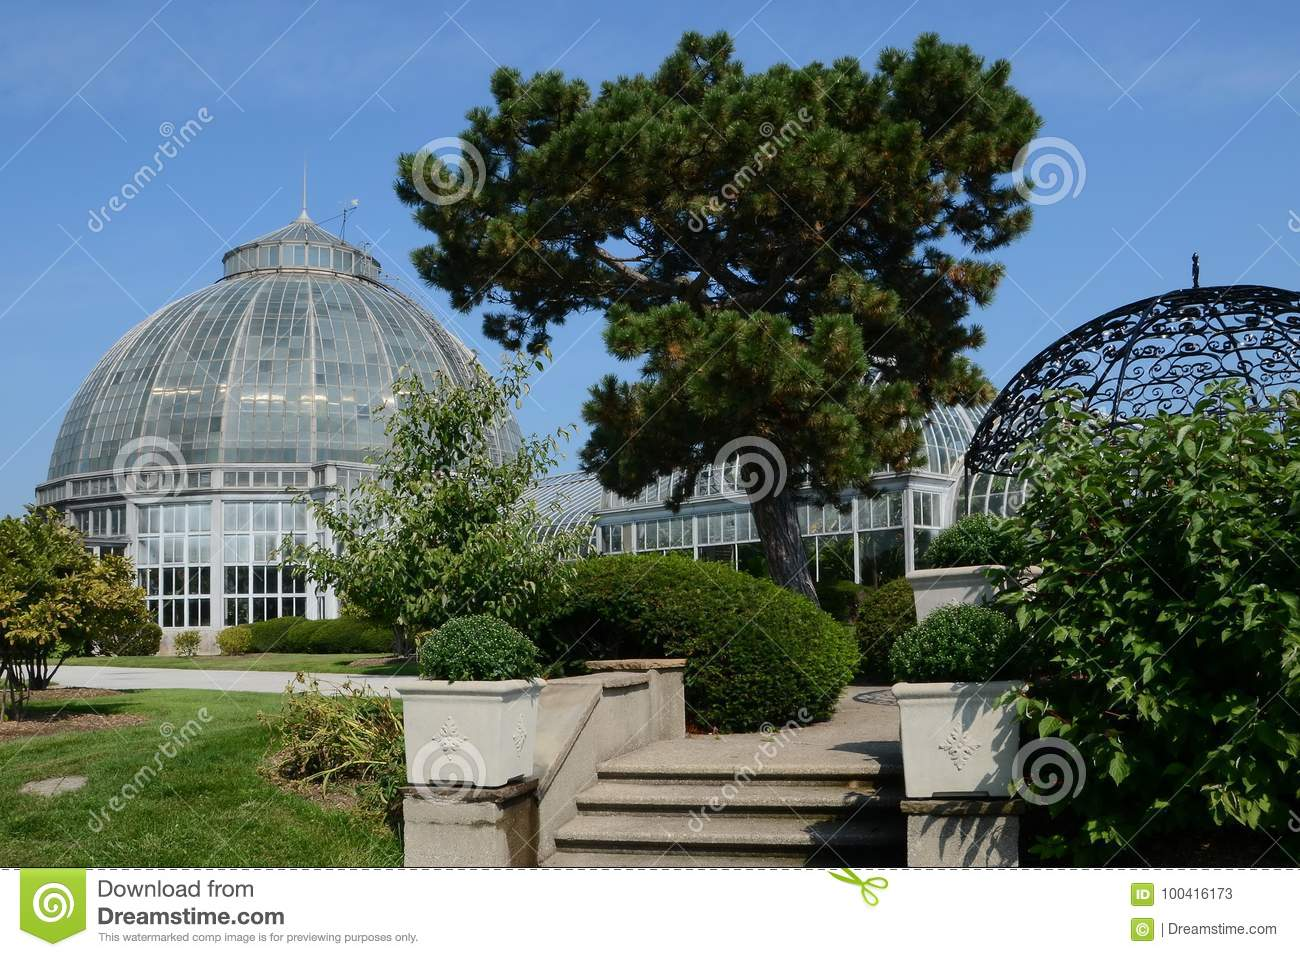 Conservatory in Detroit on Belle Isle